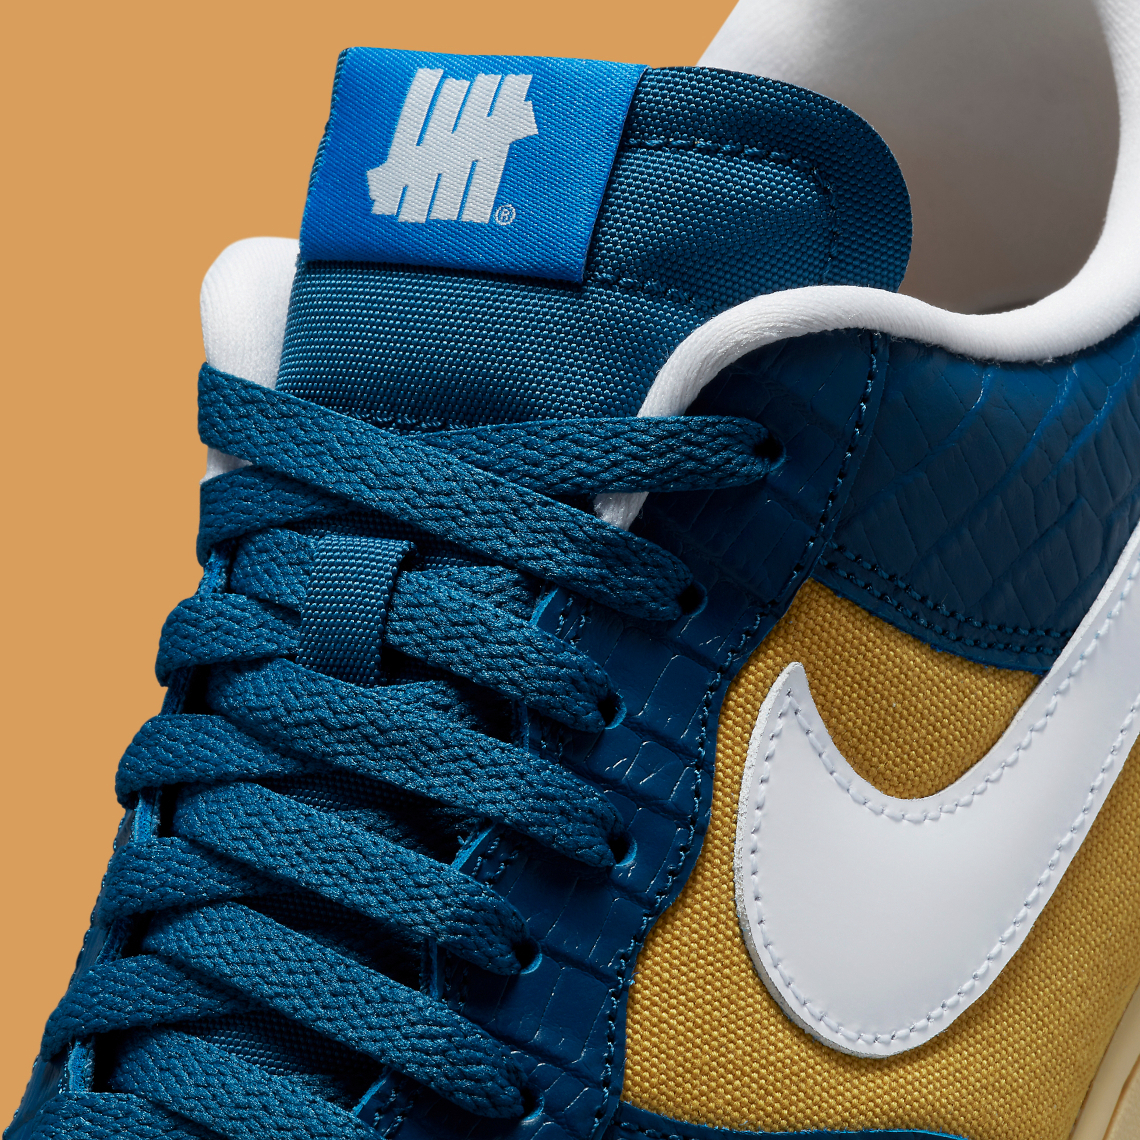 UNDEFEATED x Nike Air Force 1 Low ''5 On It'' - Court Blue - DM8462-400